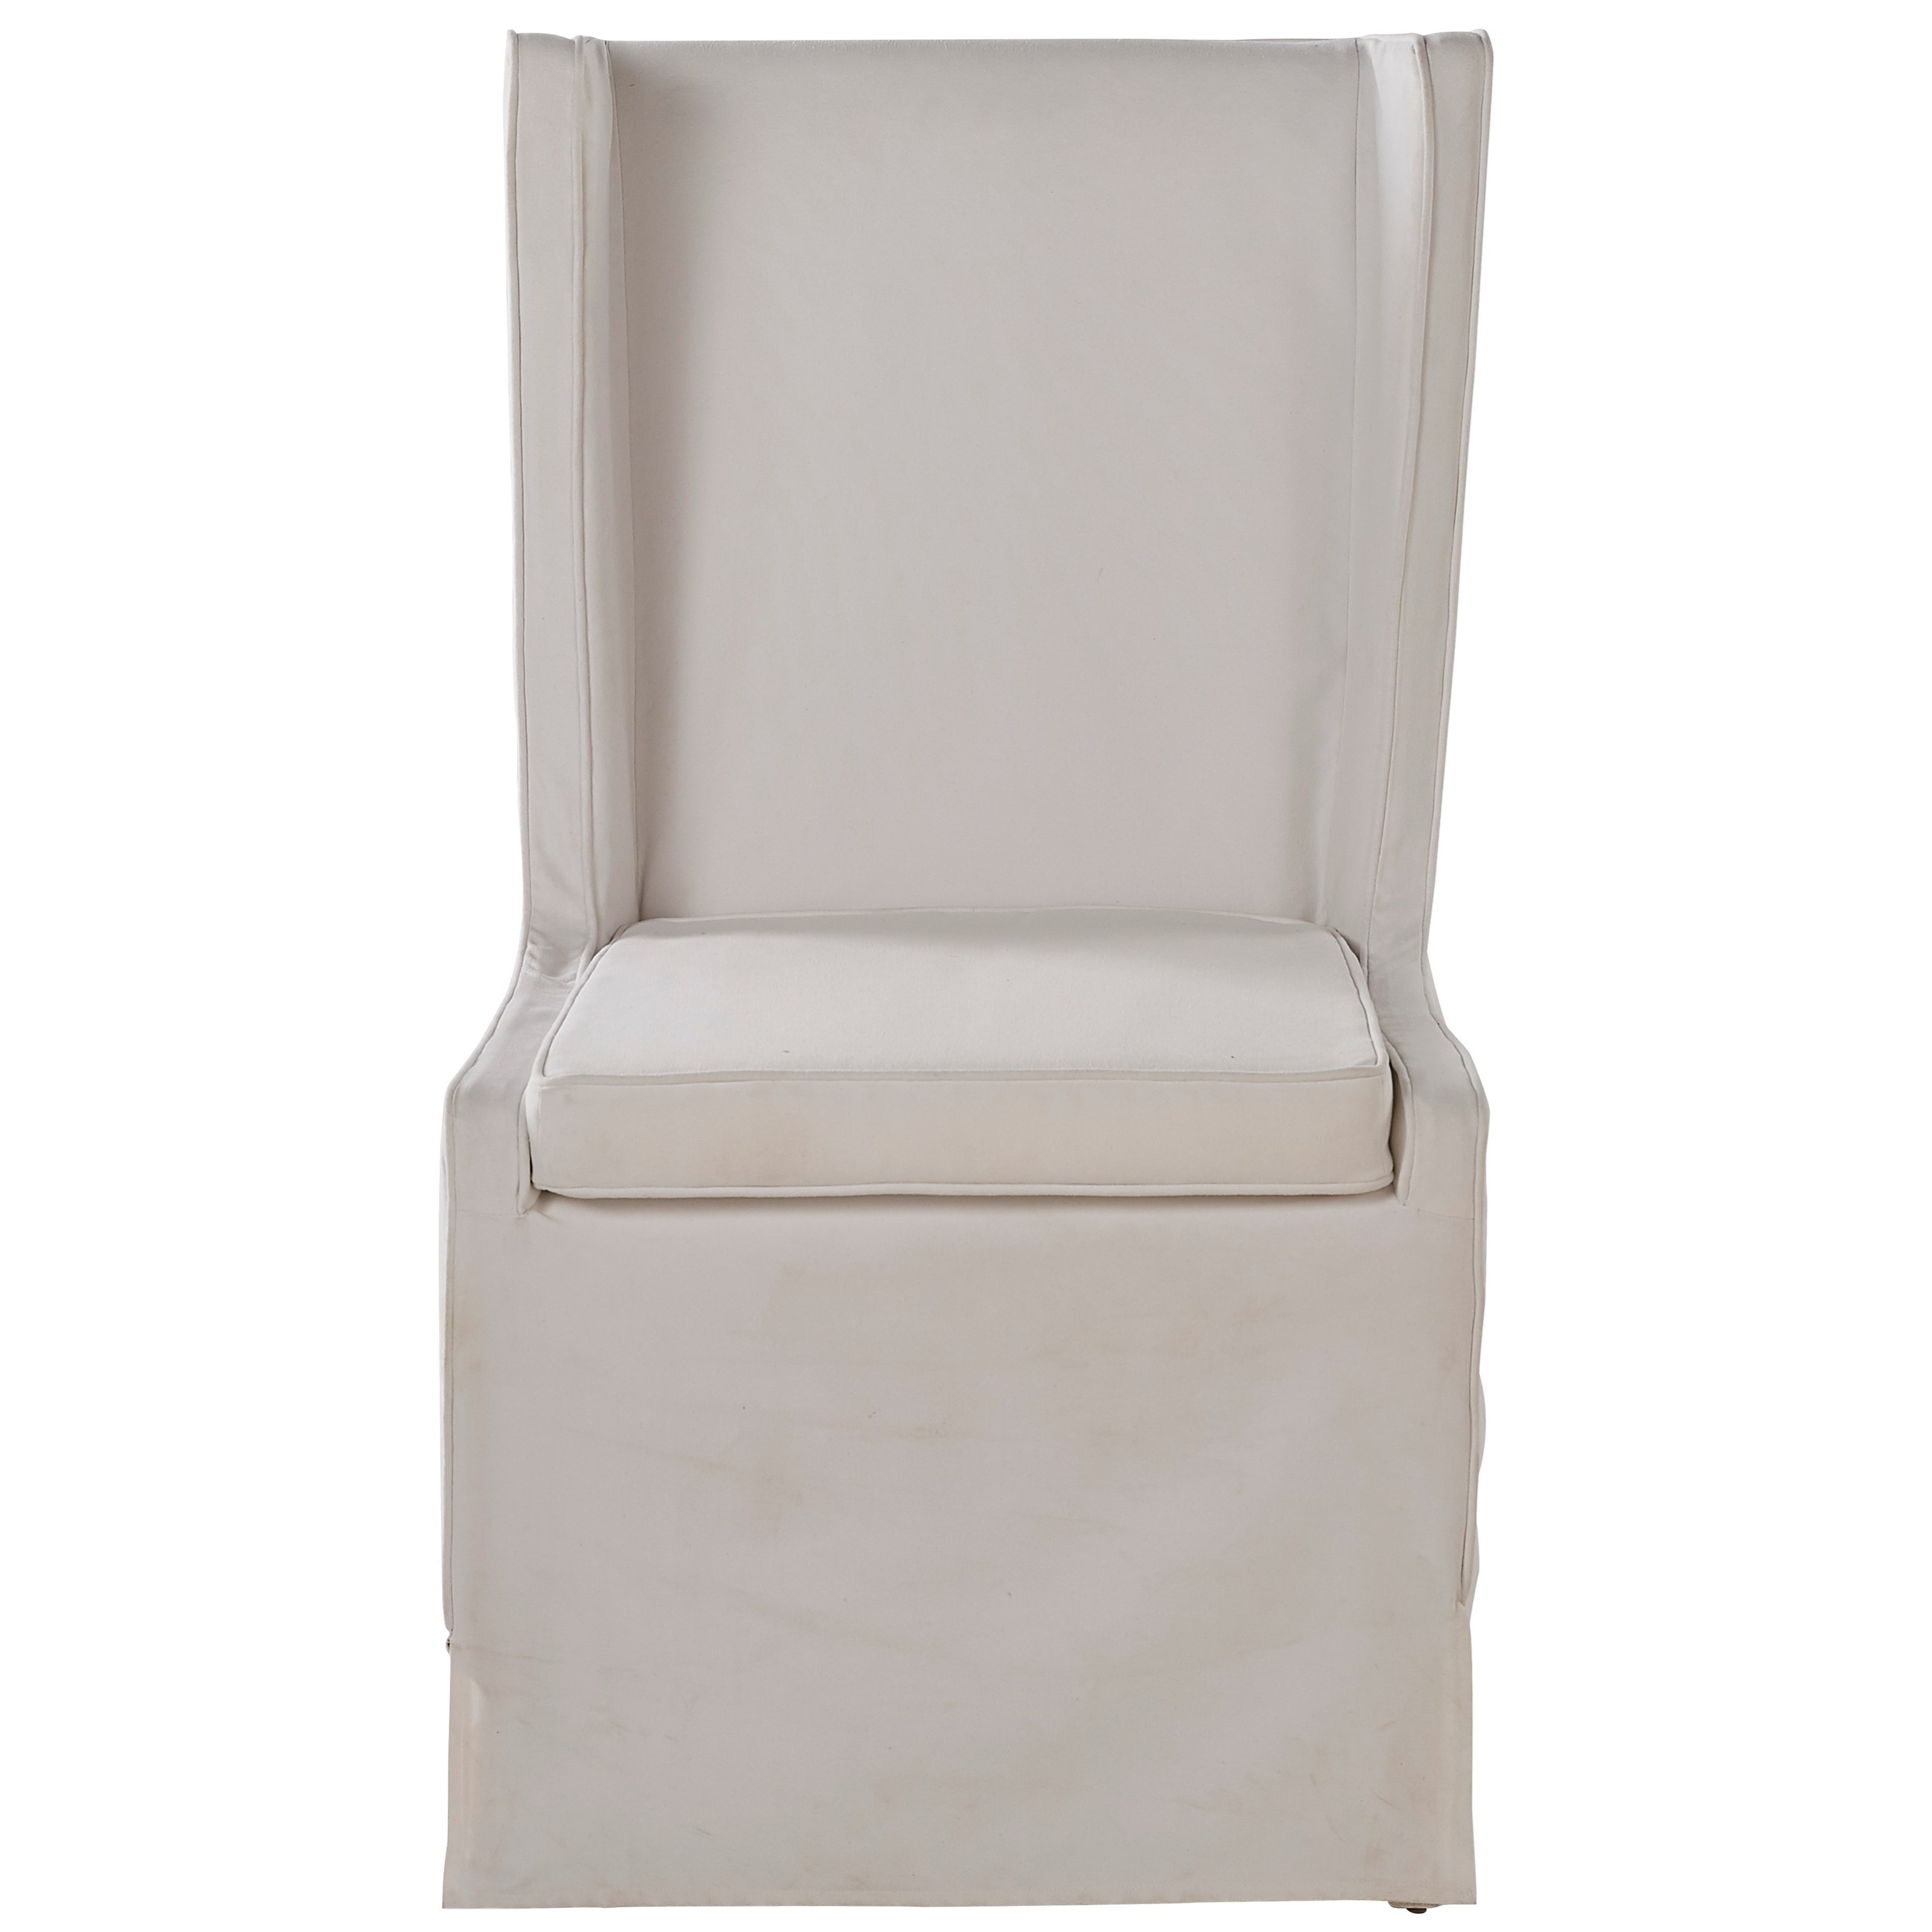 Coastal Living Home - Getaway Slip Cover Chair by Universal at Zak's Home